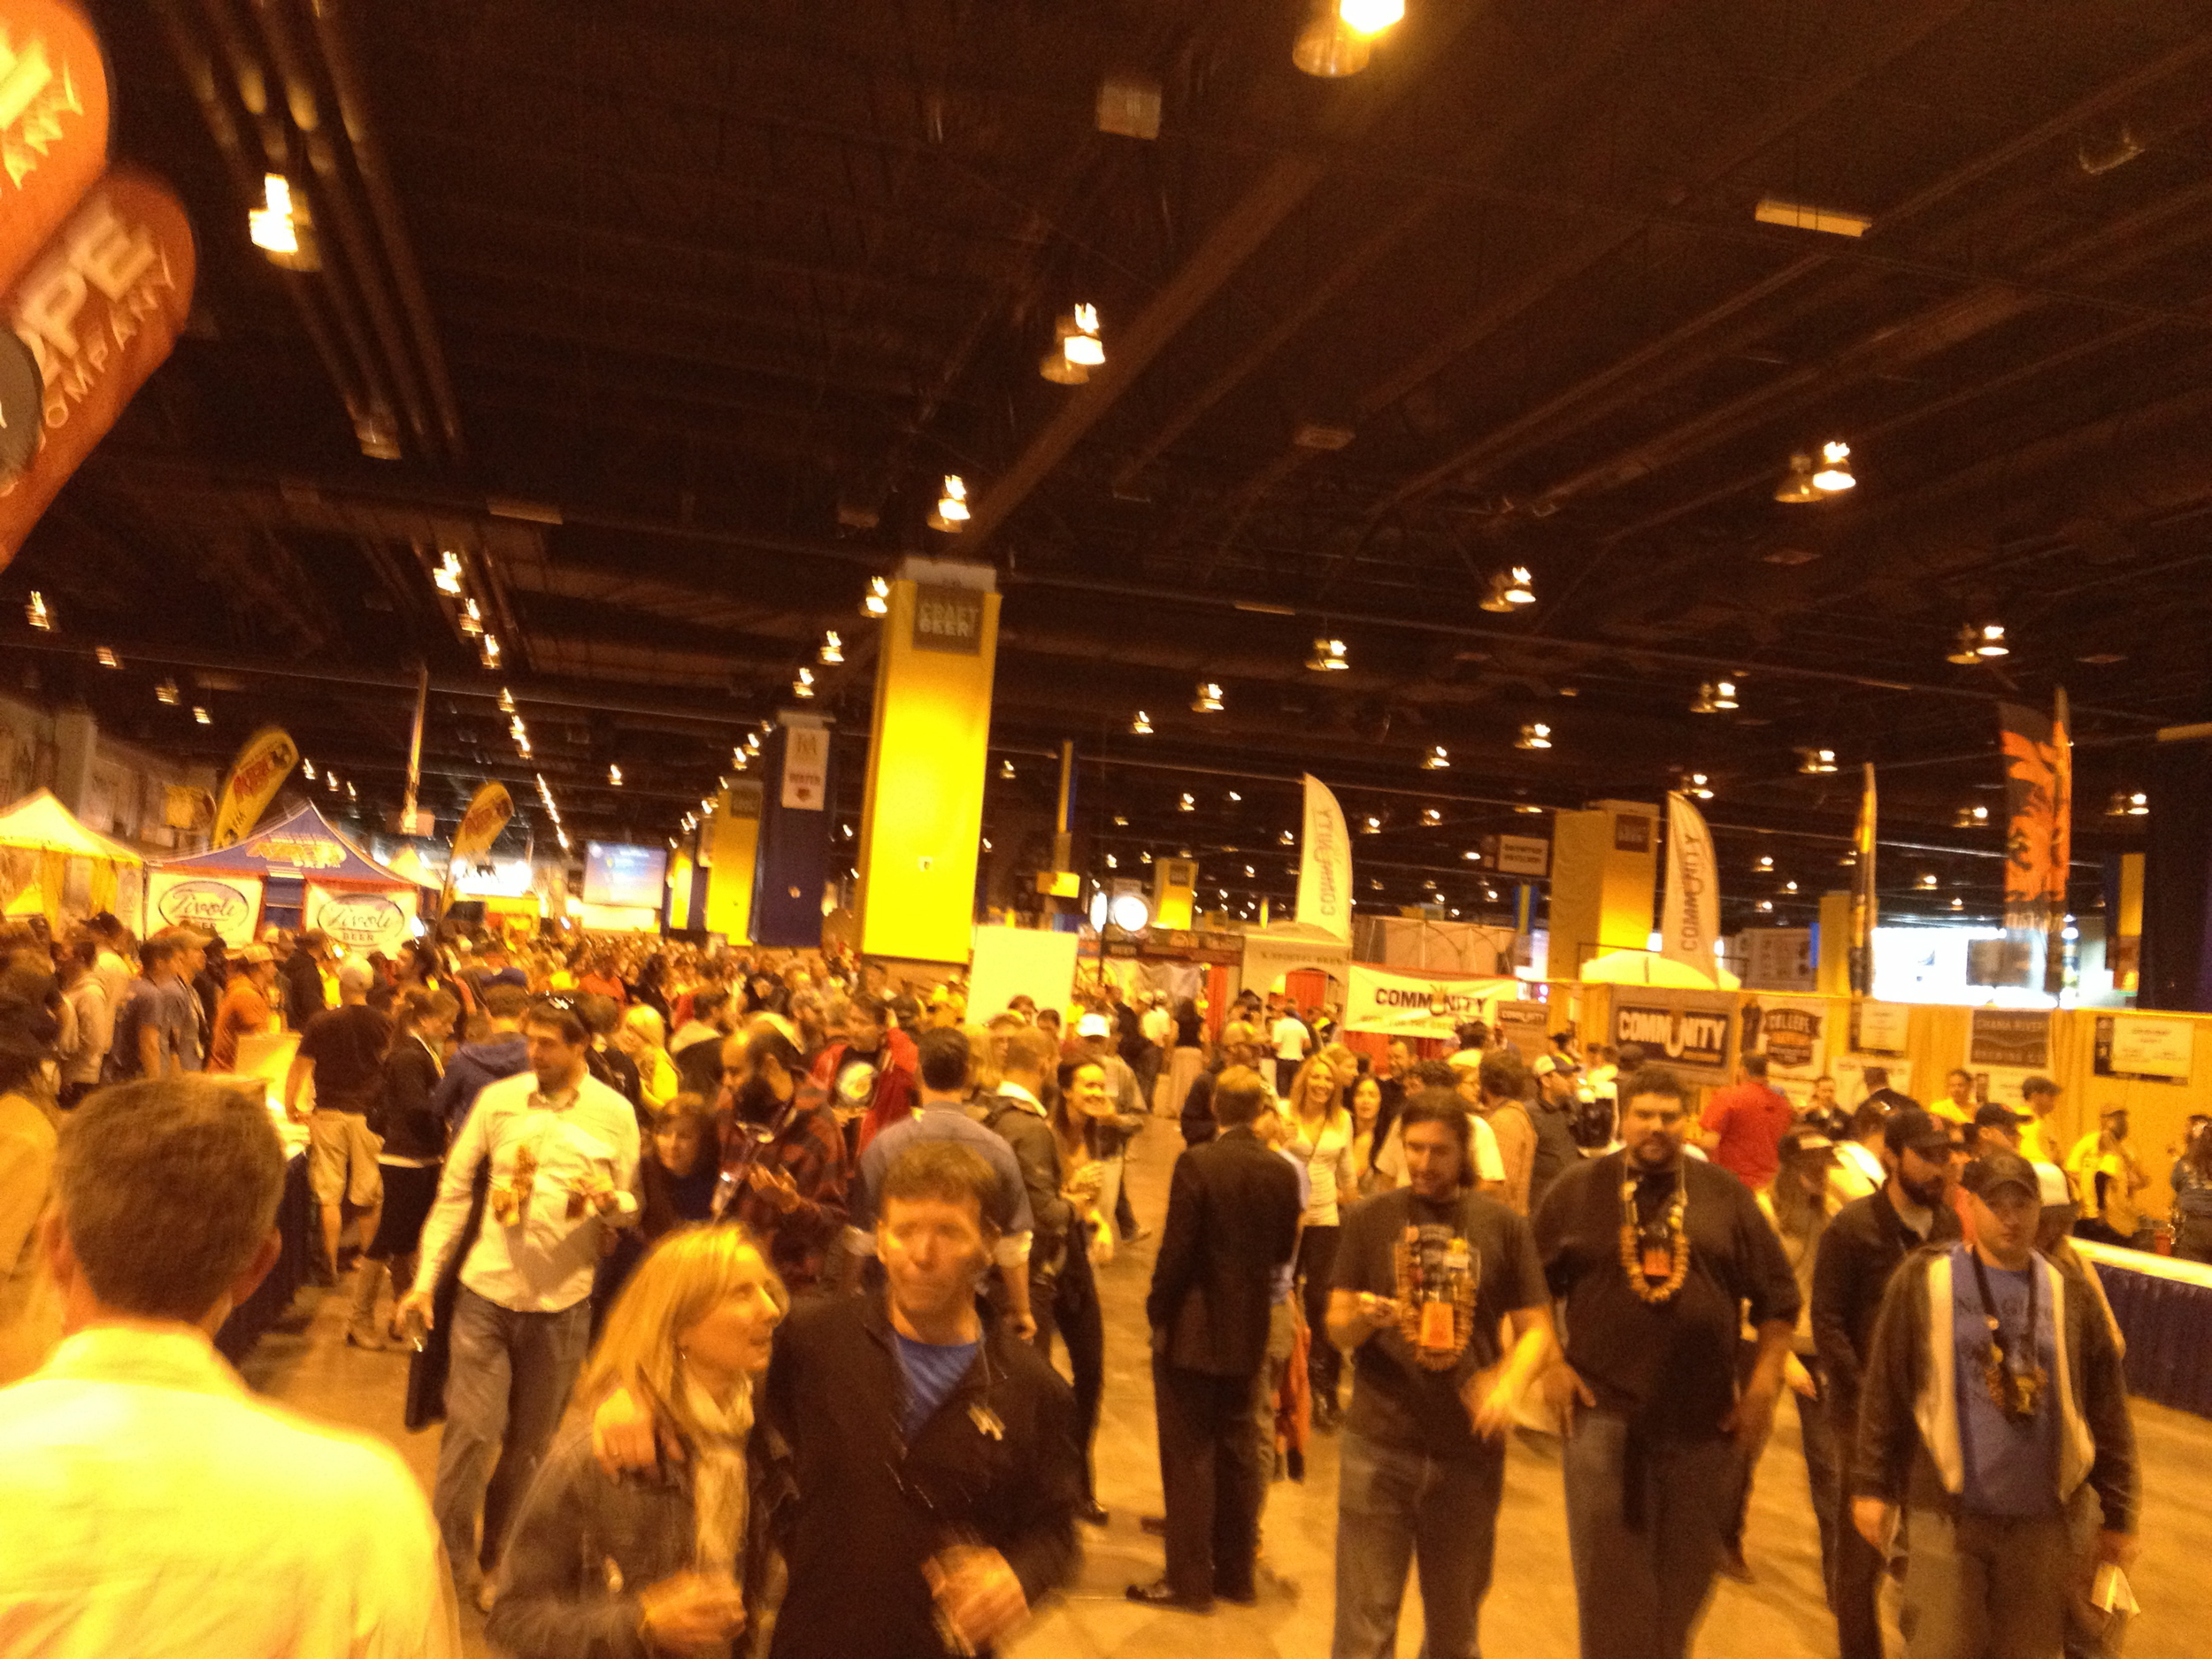 The lines are bonkers, the crowd isn't *quite* as polite as a Midwestern one, but it's a hell of a party.